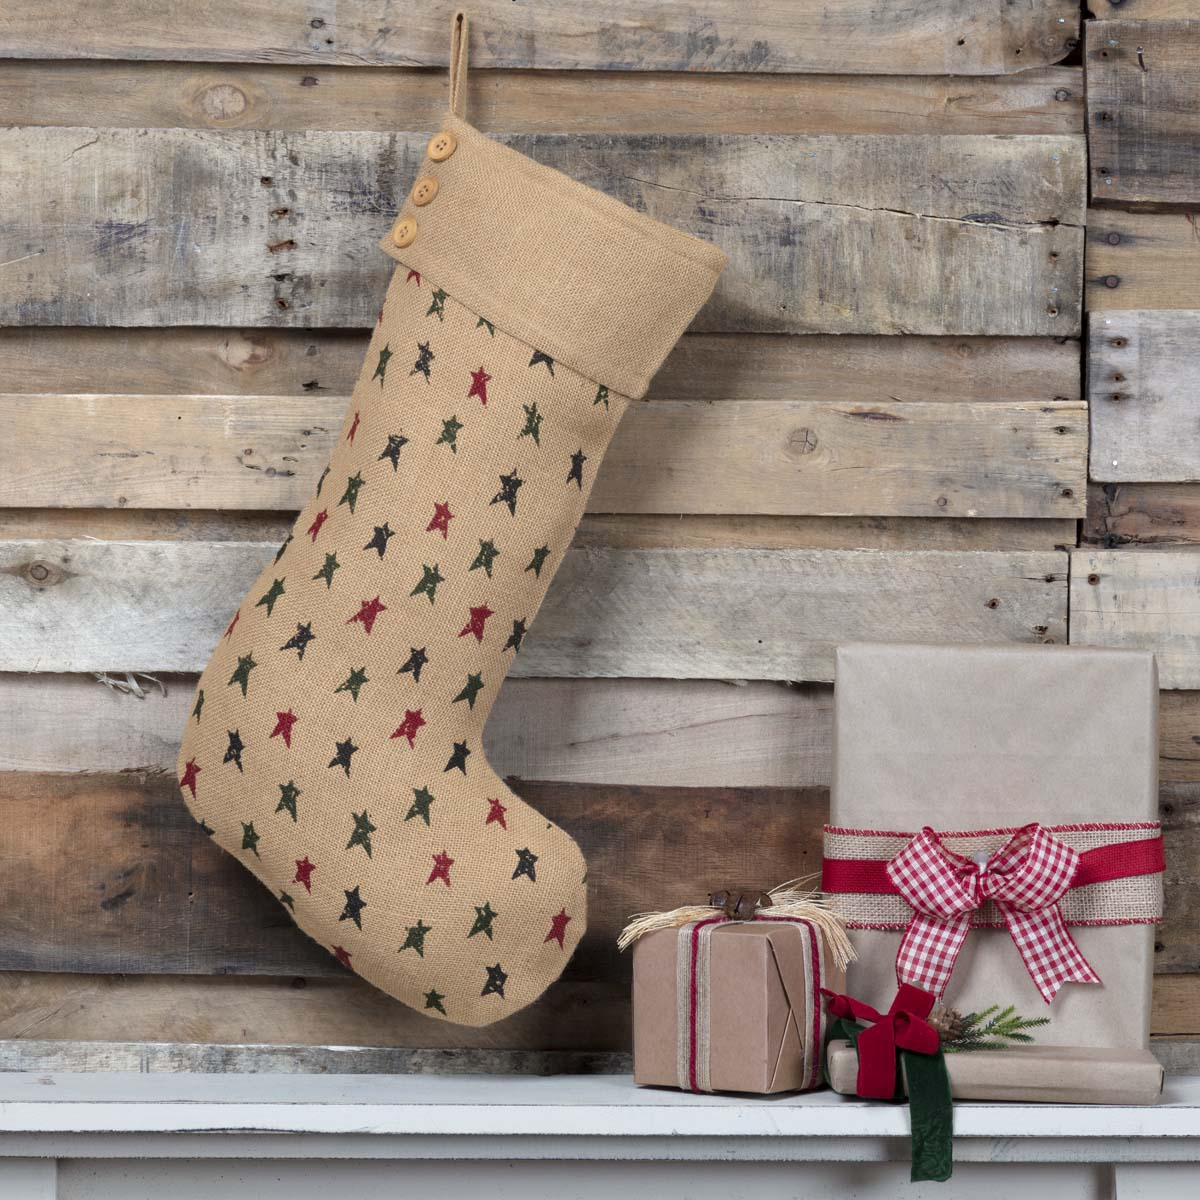 Primitive Star Jute Stocking 12x20 - Woodrol